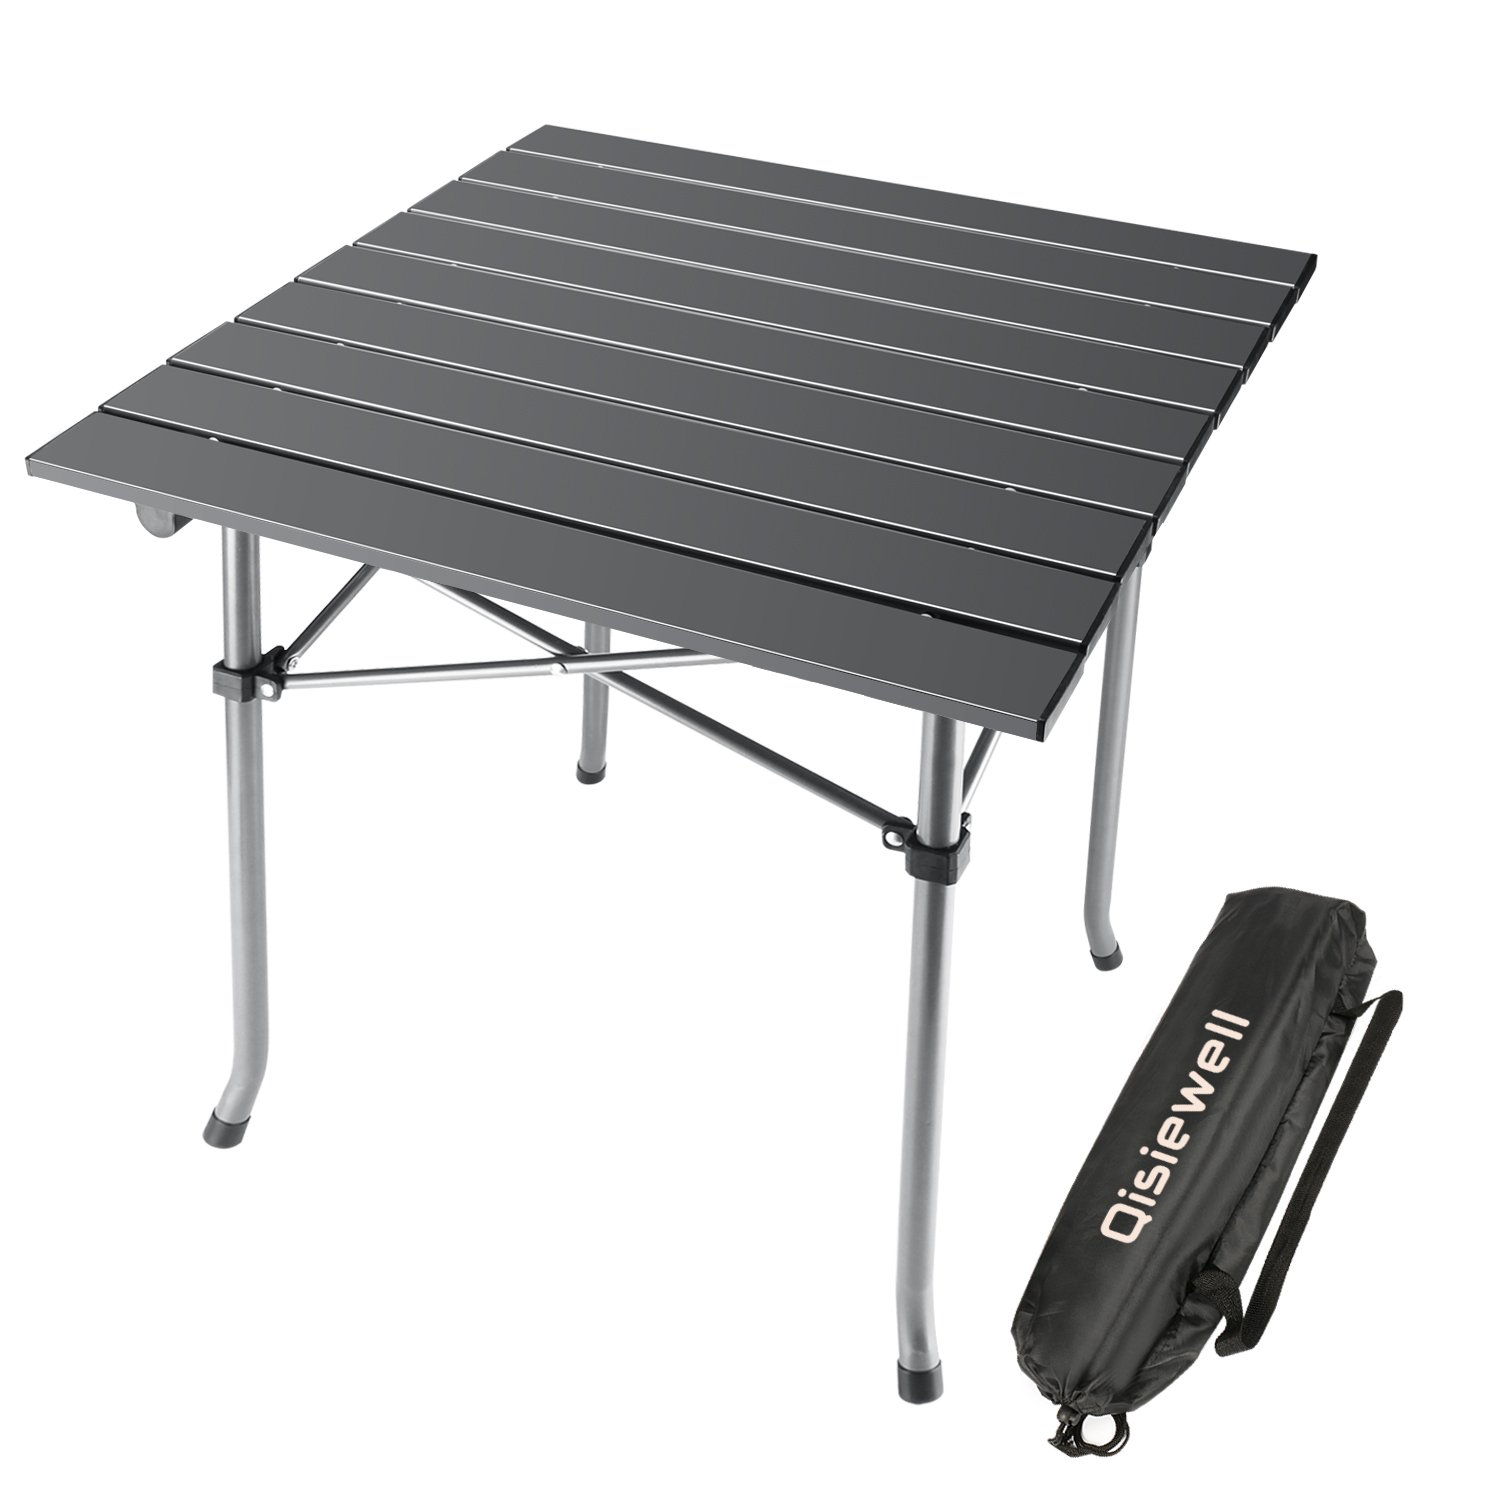 Qisiewell table de camping plage pliante en aluminium pique nique portable ebay - Table picnic pliante decathlon ...